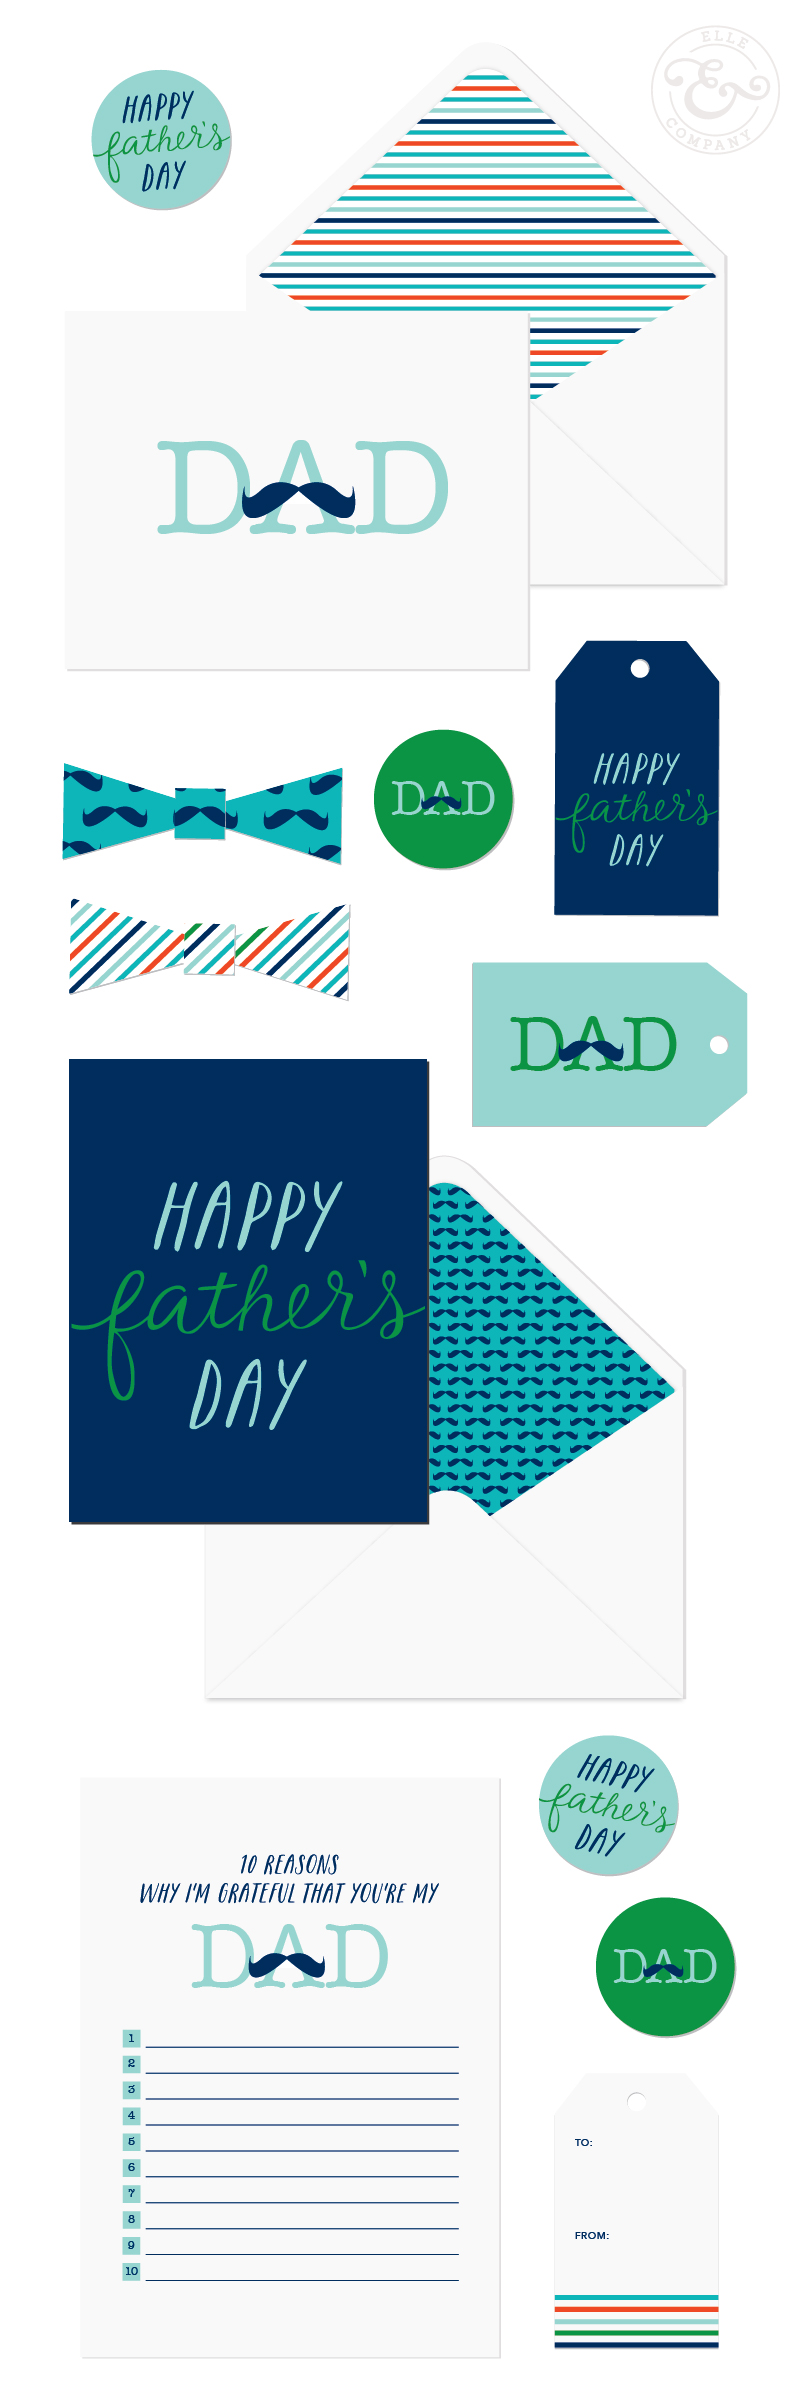 Elle & Company Fathers Day Printables